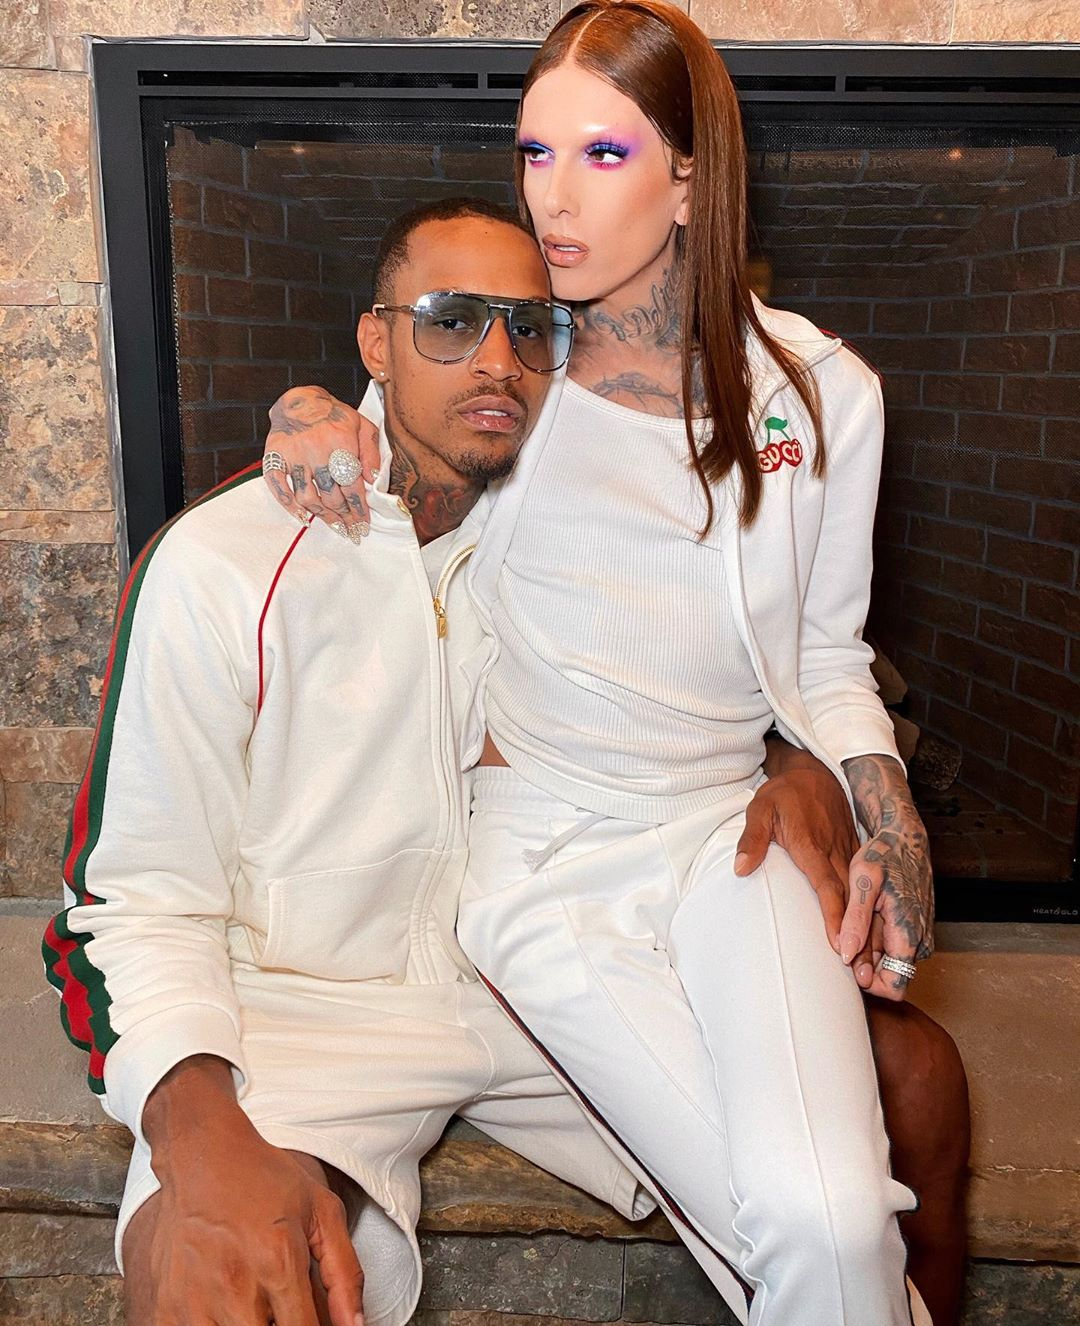 Jeffree Star and boyfriend Andre Marhold